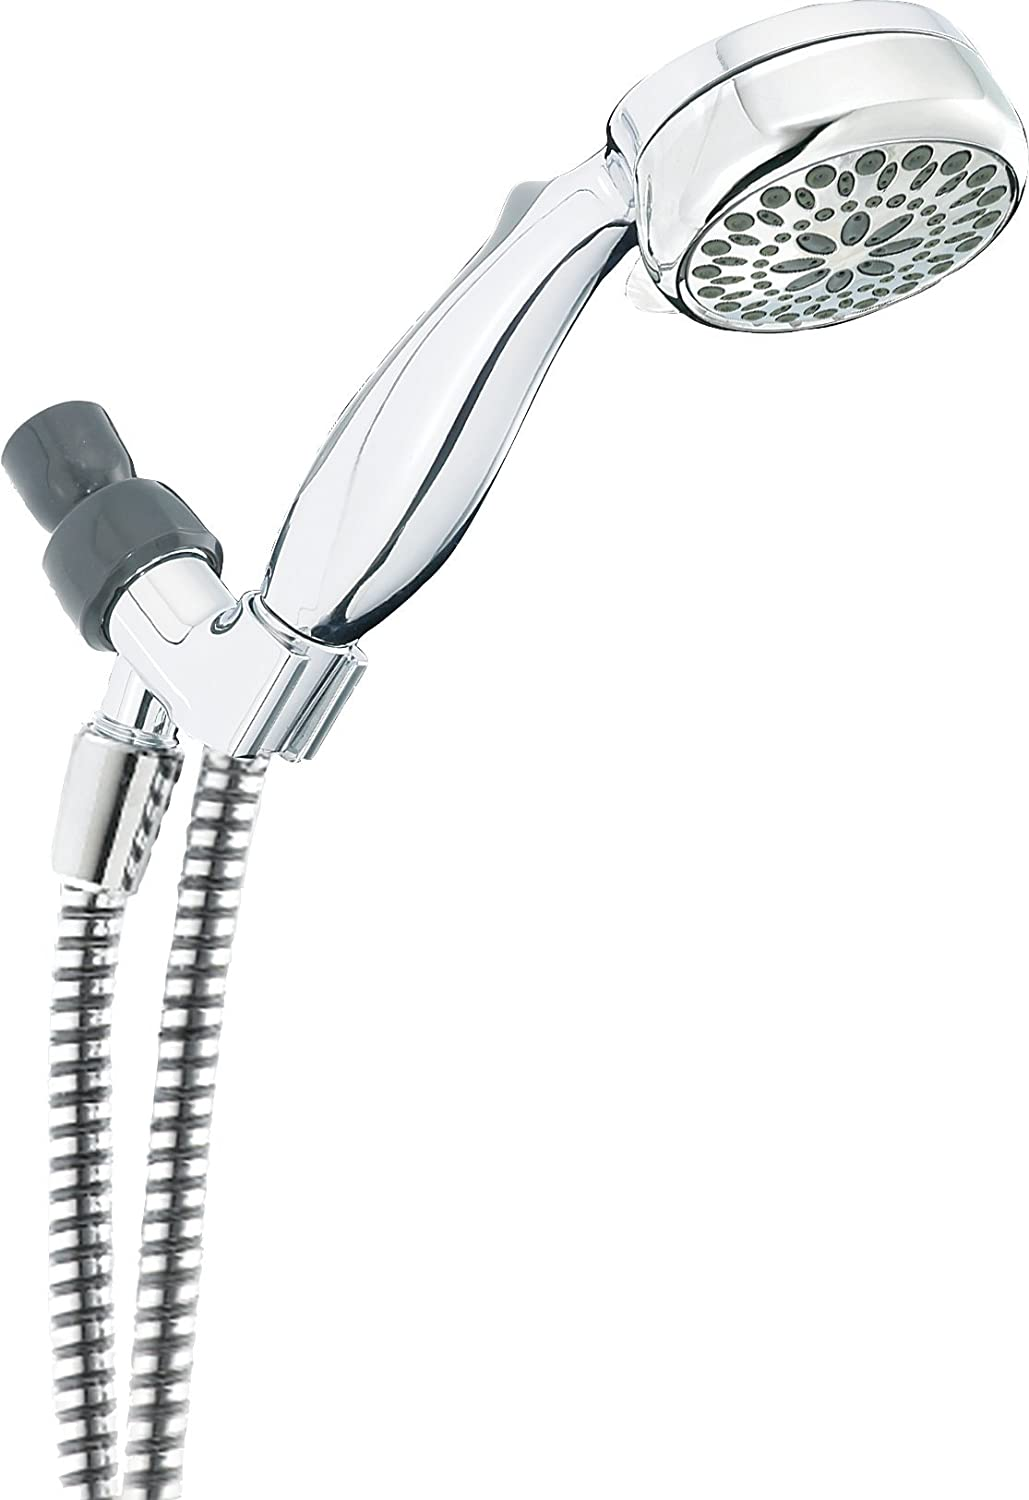 Best Handheld Shower Head 5